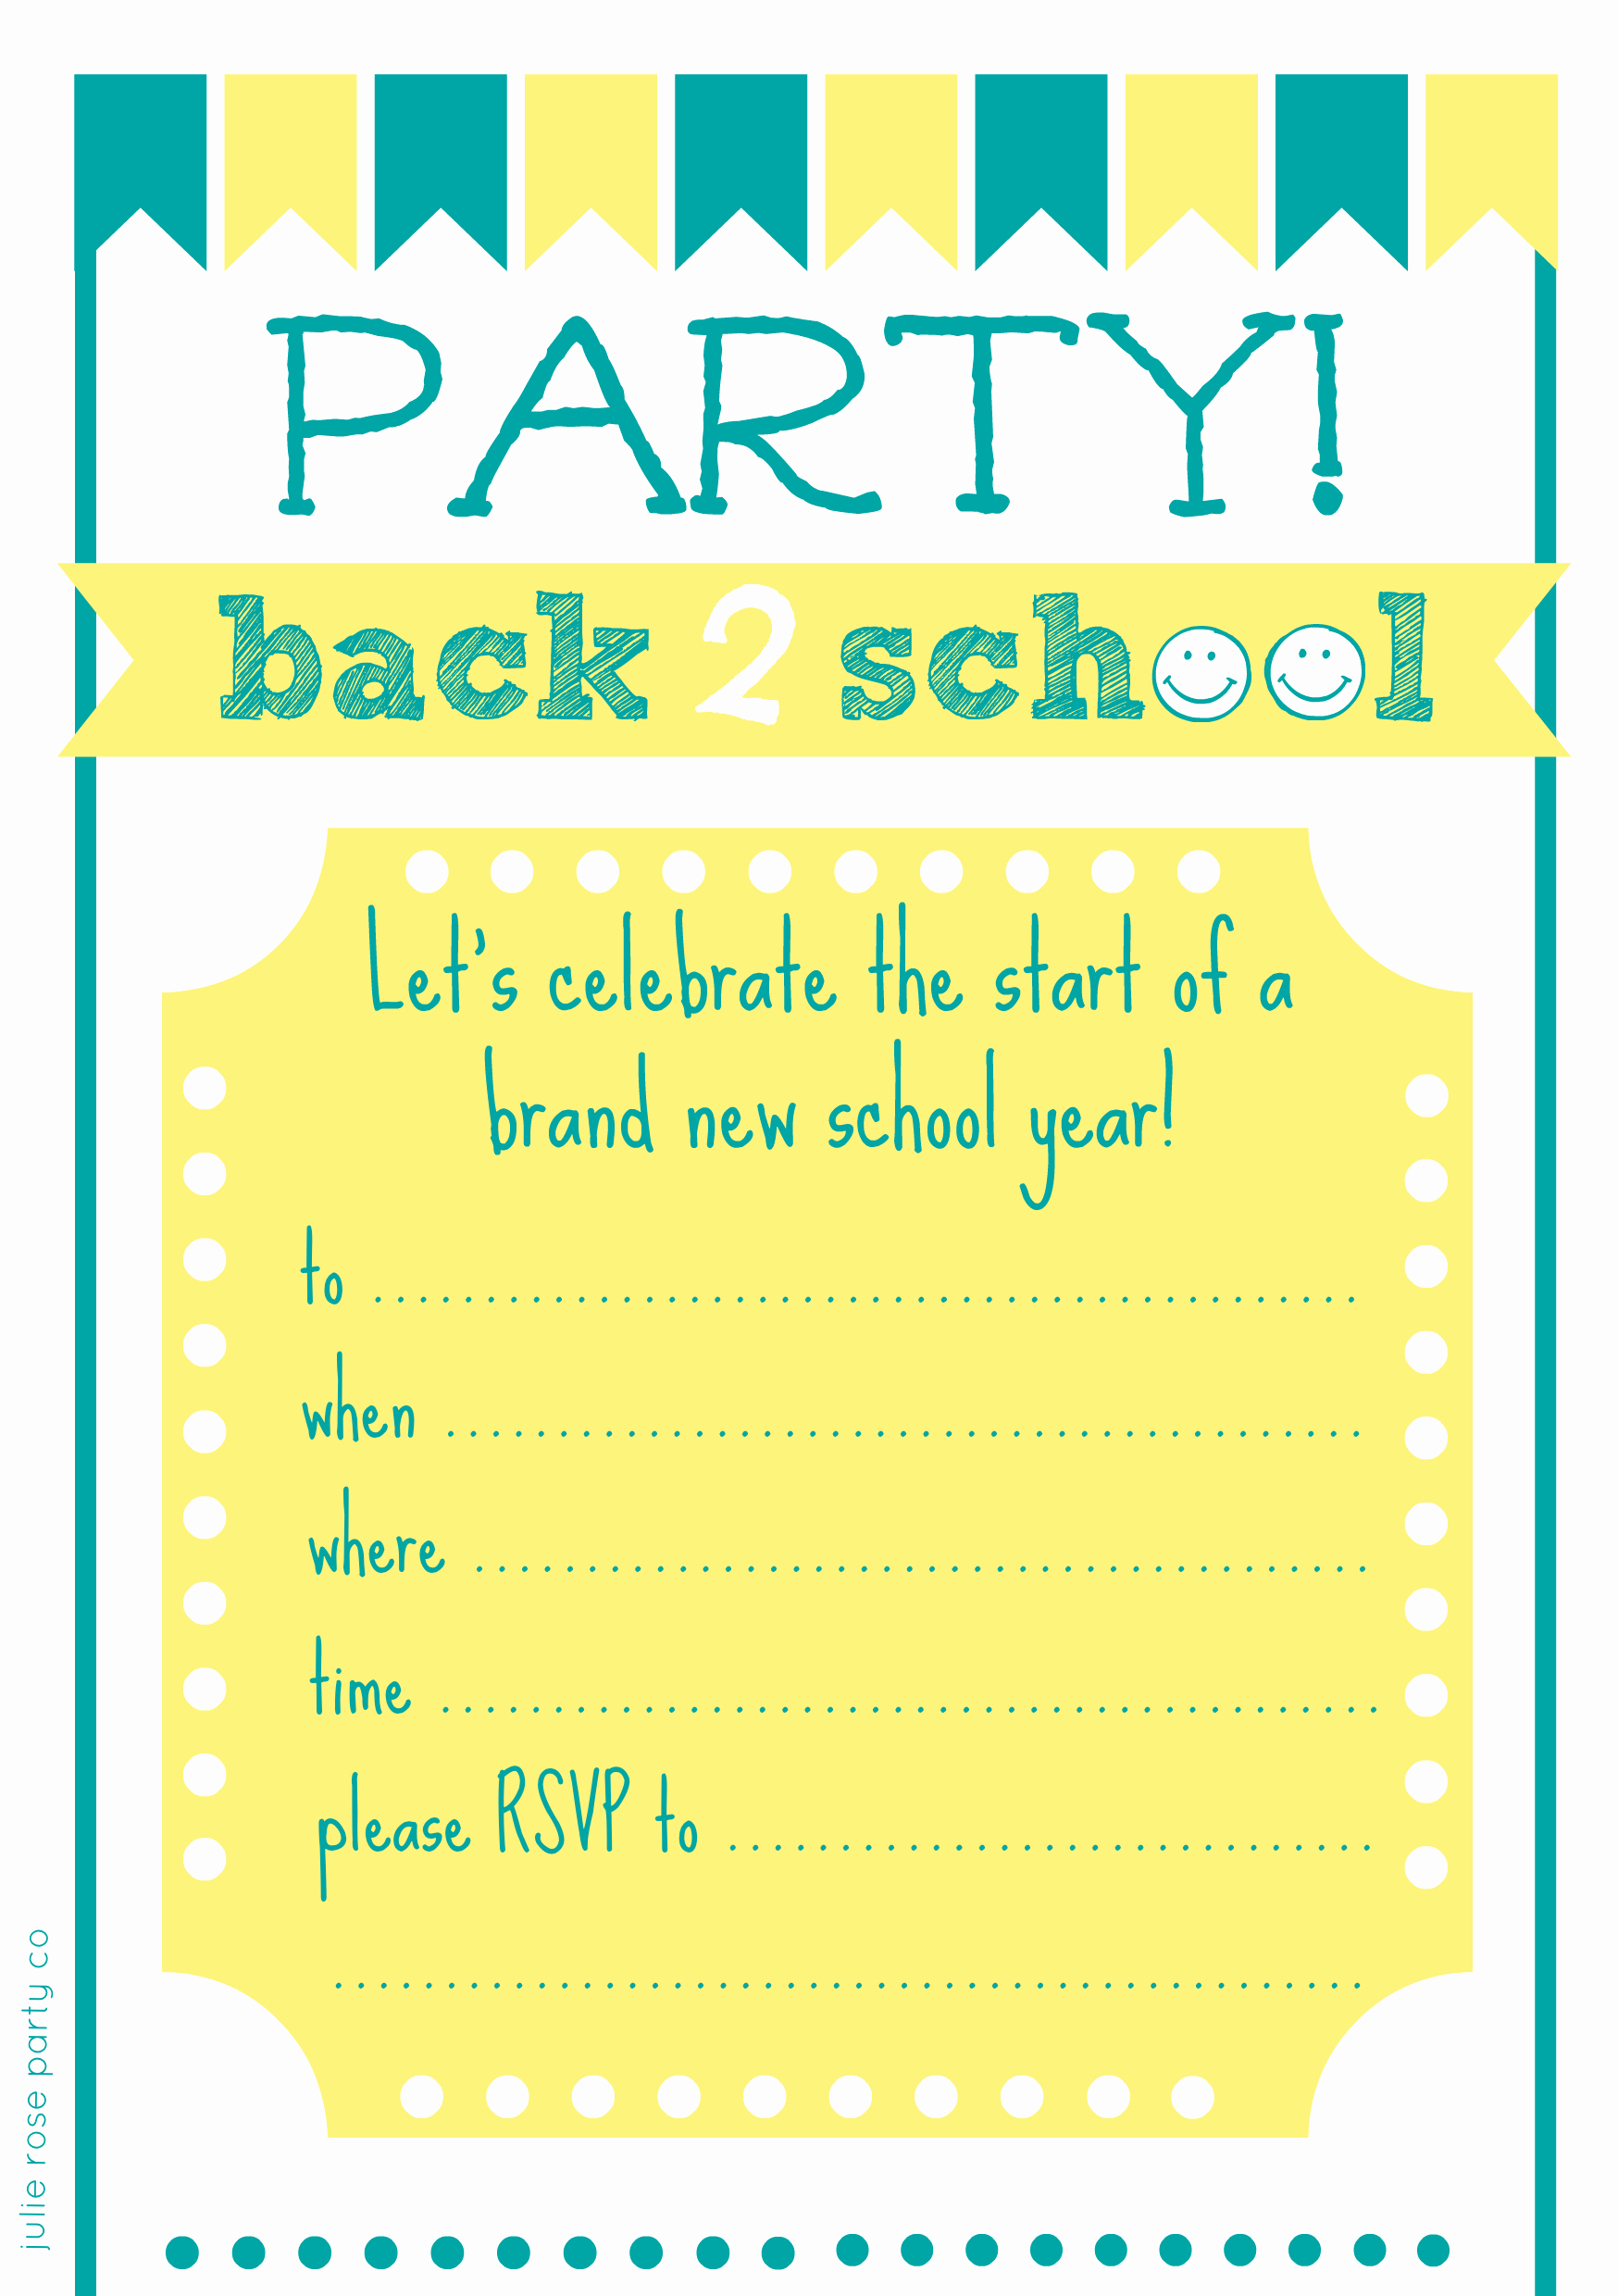 Back to School Party Invitation Beautiful Free Back to School Party Invites and Cake toppers